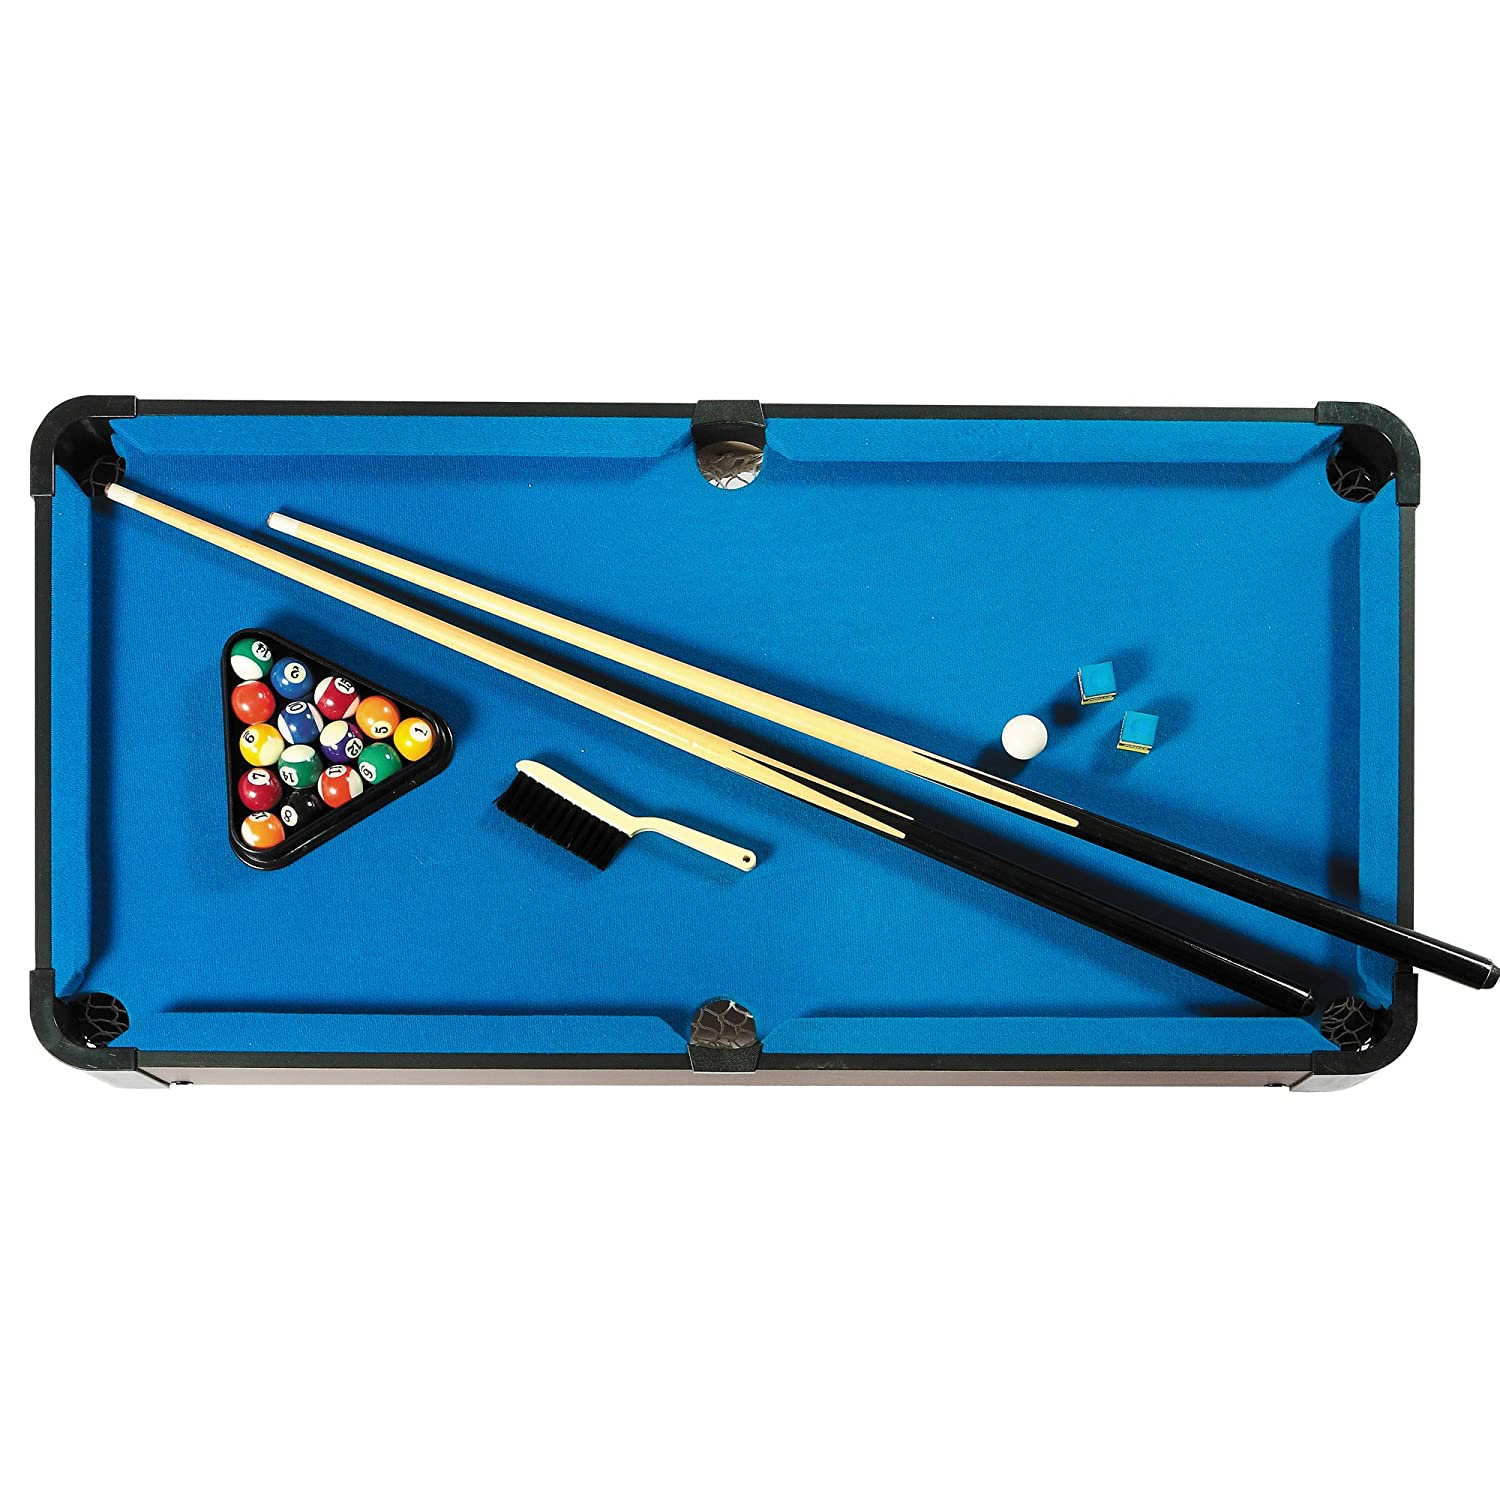 Amazon.com : Hathaway Sharp Shooter Pool Table, Blue, 40 Inch : Table Top Pool  Table : Sports U0026 Outdoors